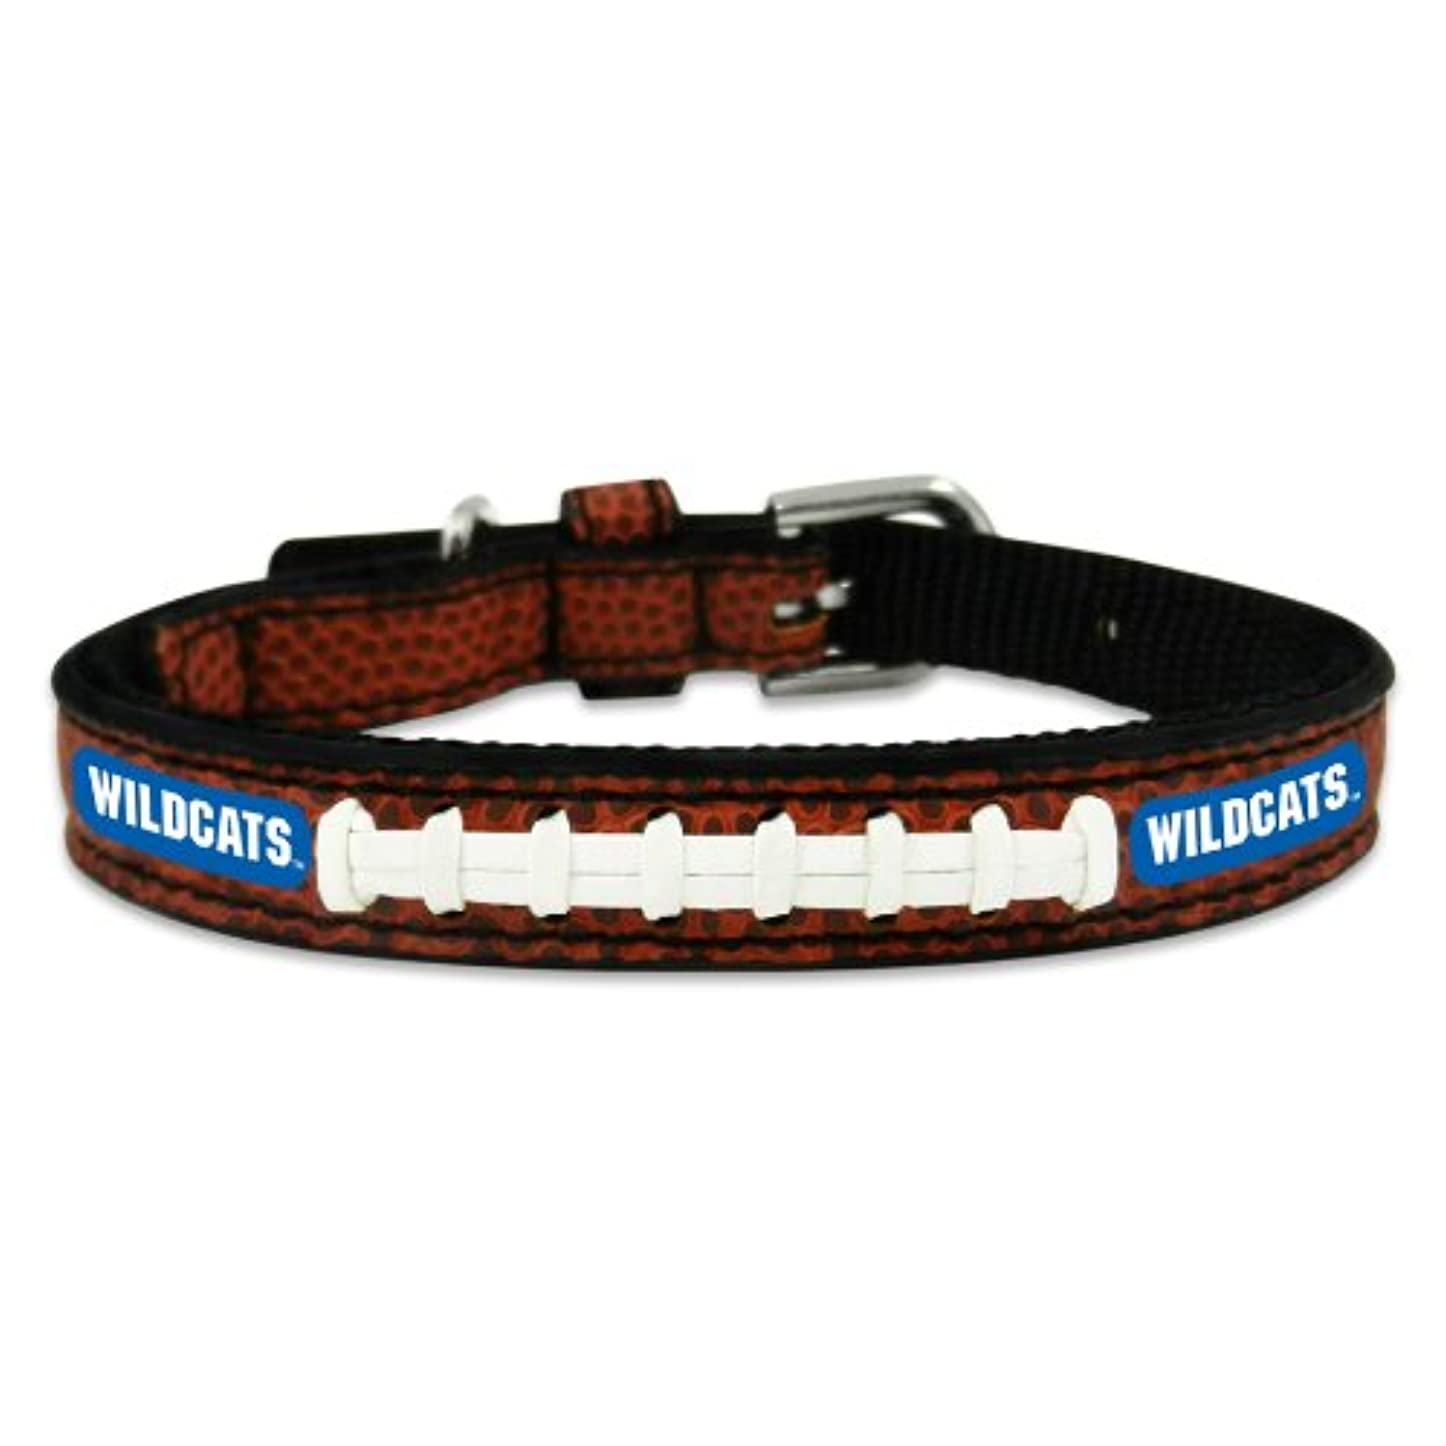 命令的はず埋めるKentucky Wildcats Classic Leather Toy Football Collar